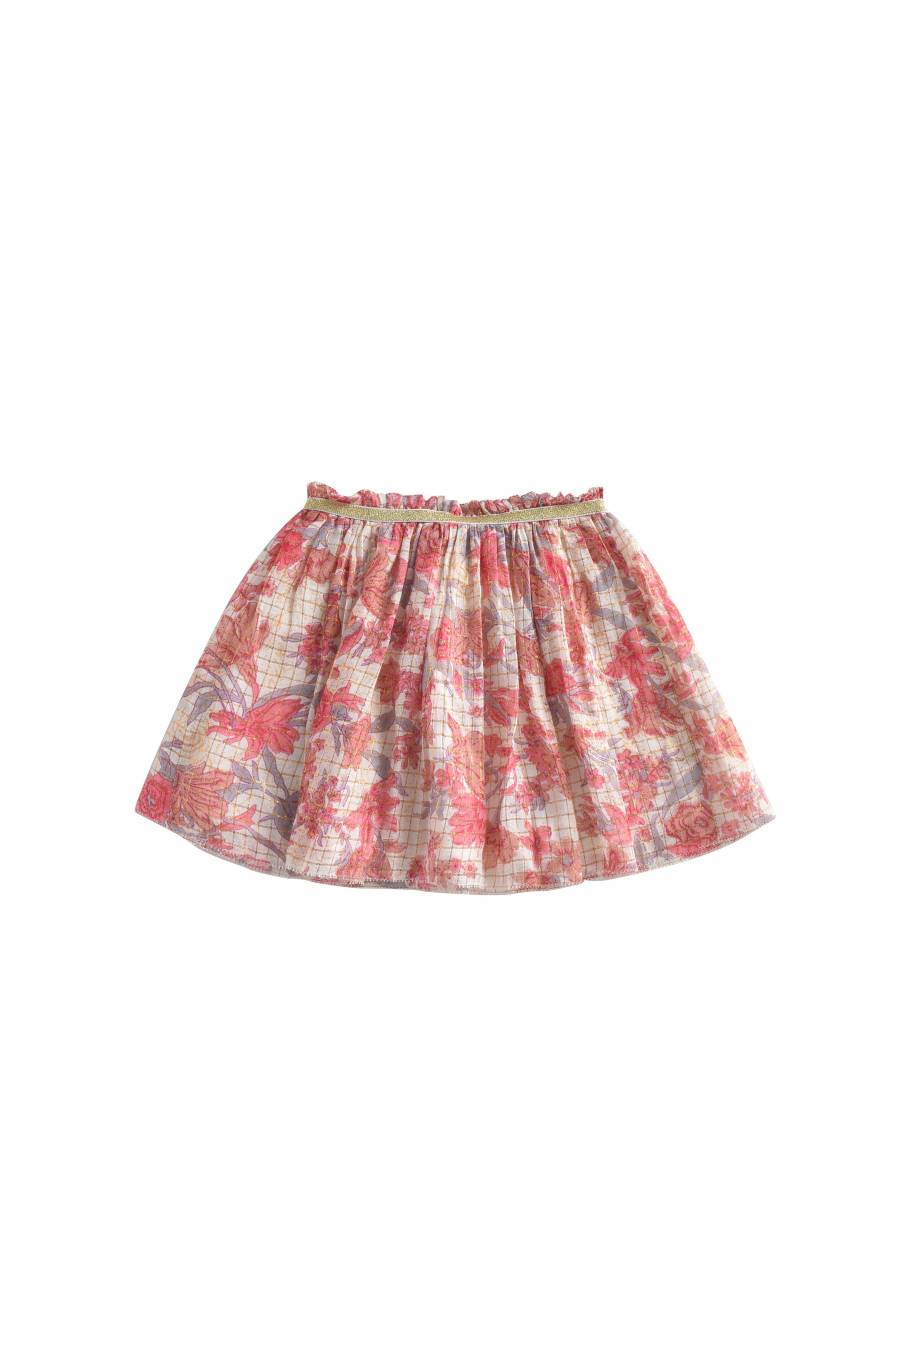 Skirt Salina Pink Flowers